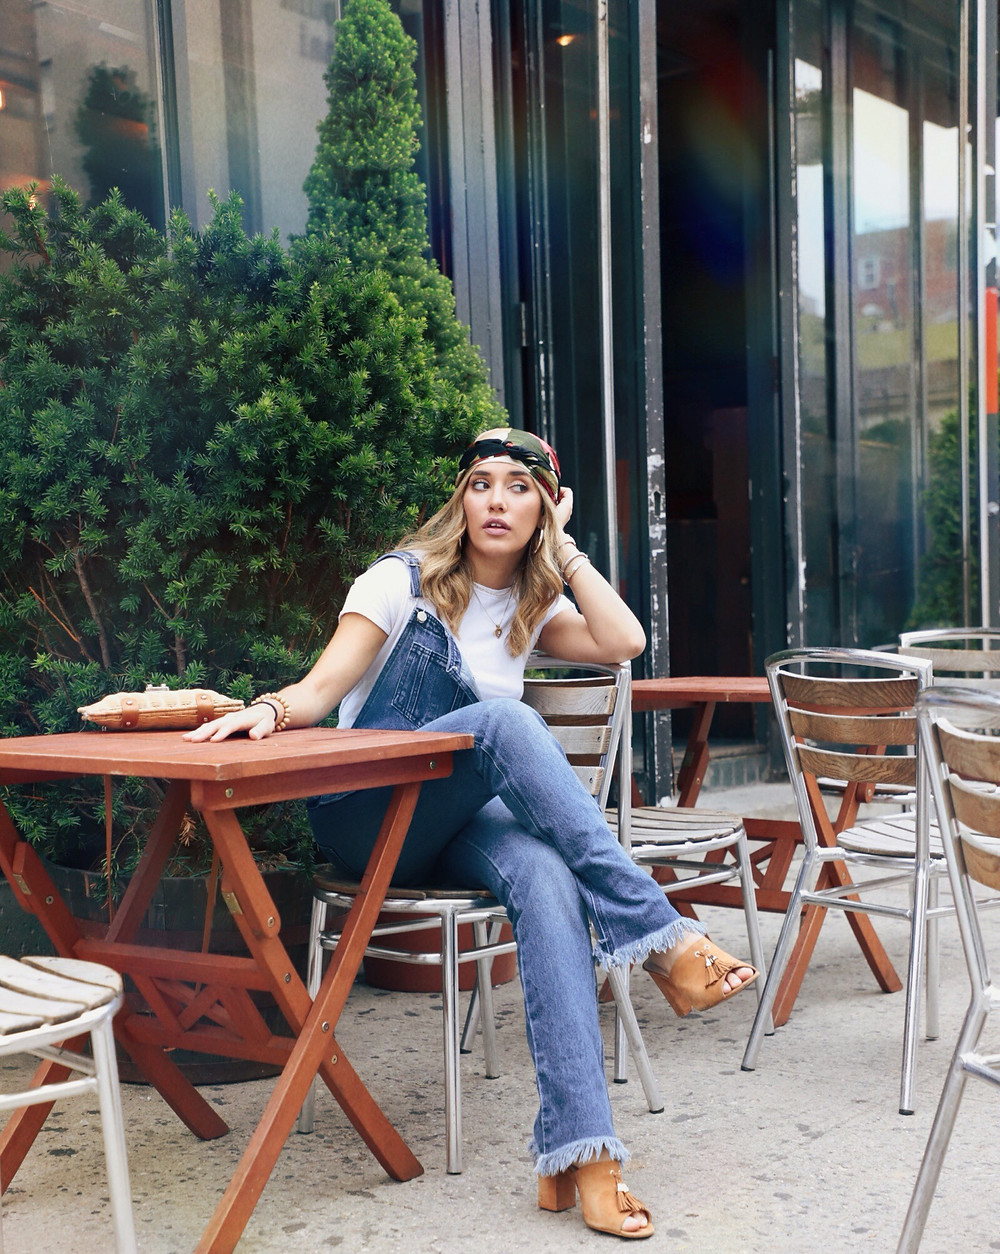 Fashion Blogger Barbie Brignoni wearing denim overalls and sitting outside in a Café in the Lower East Side